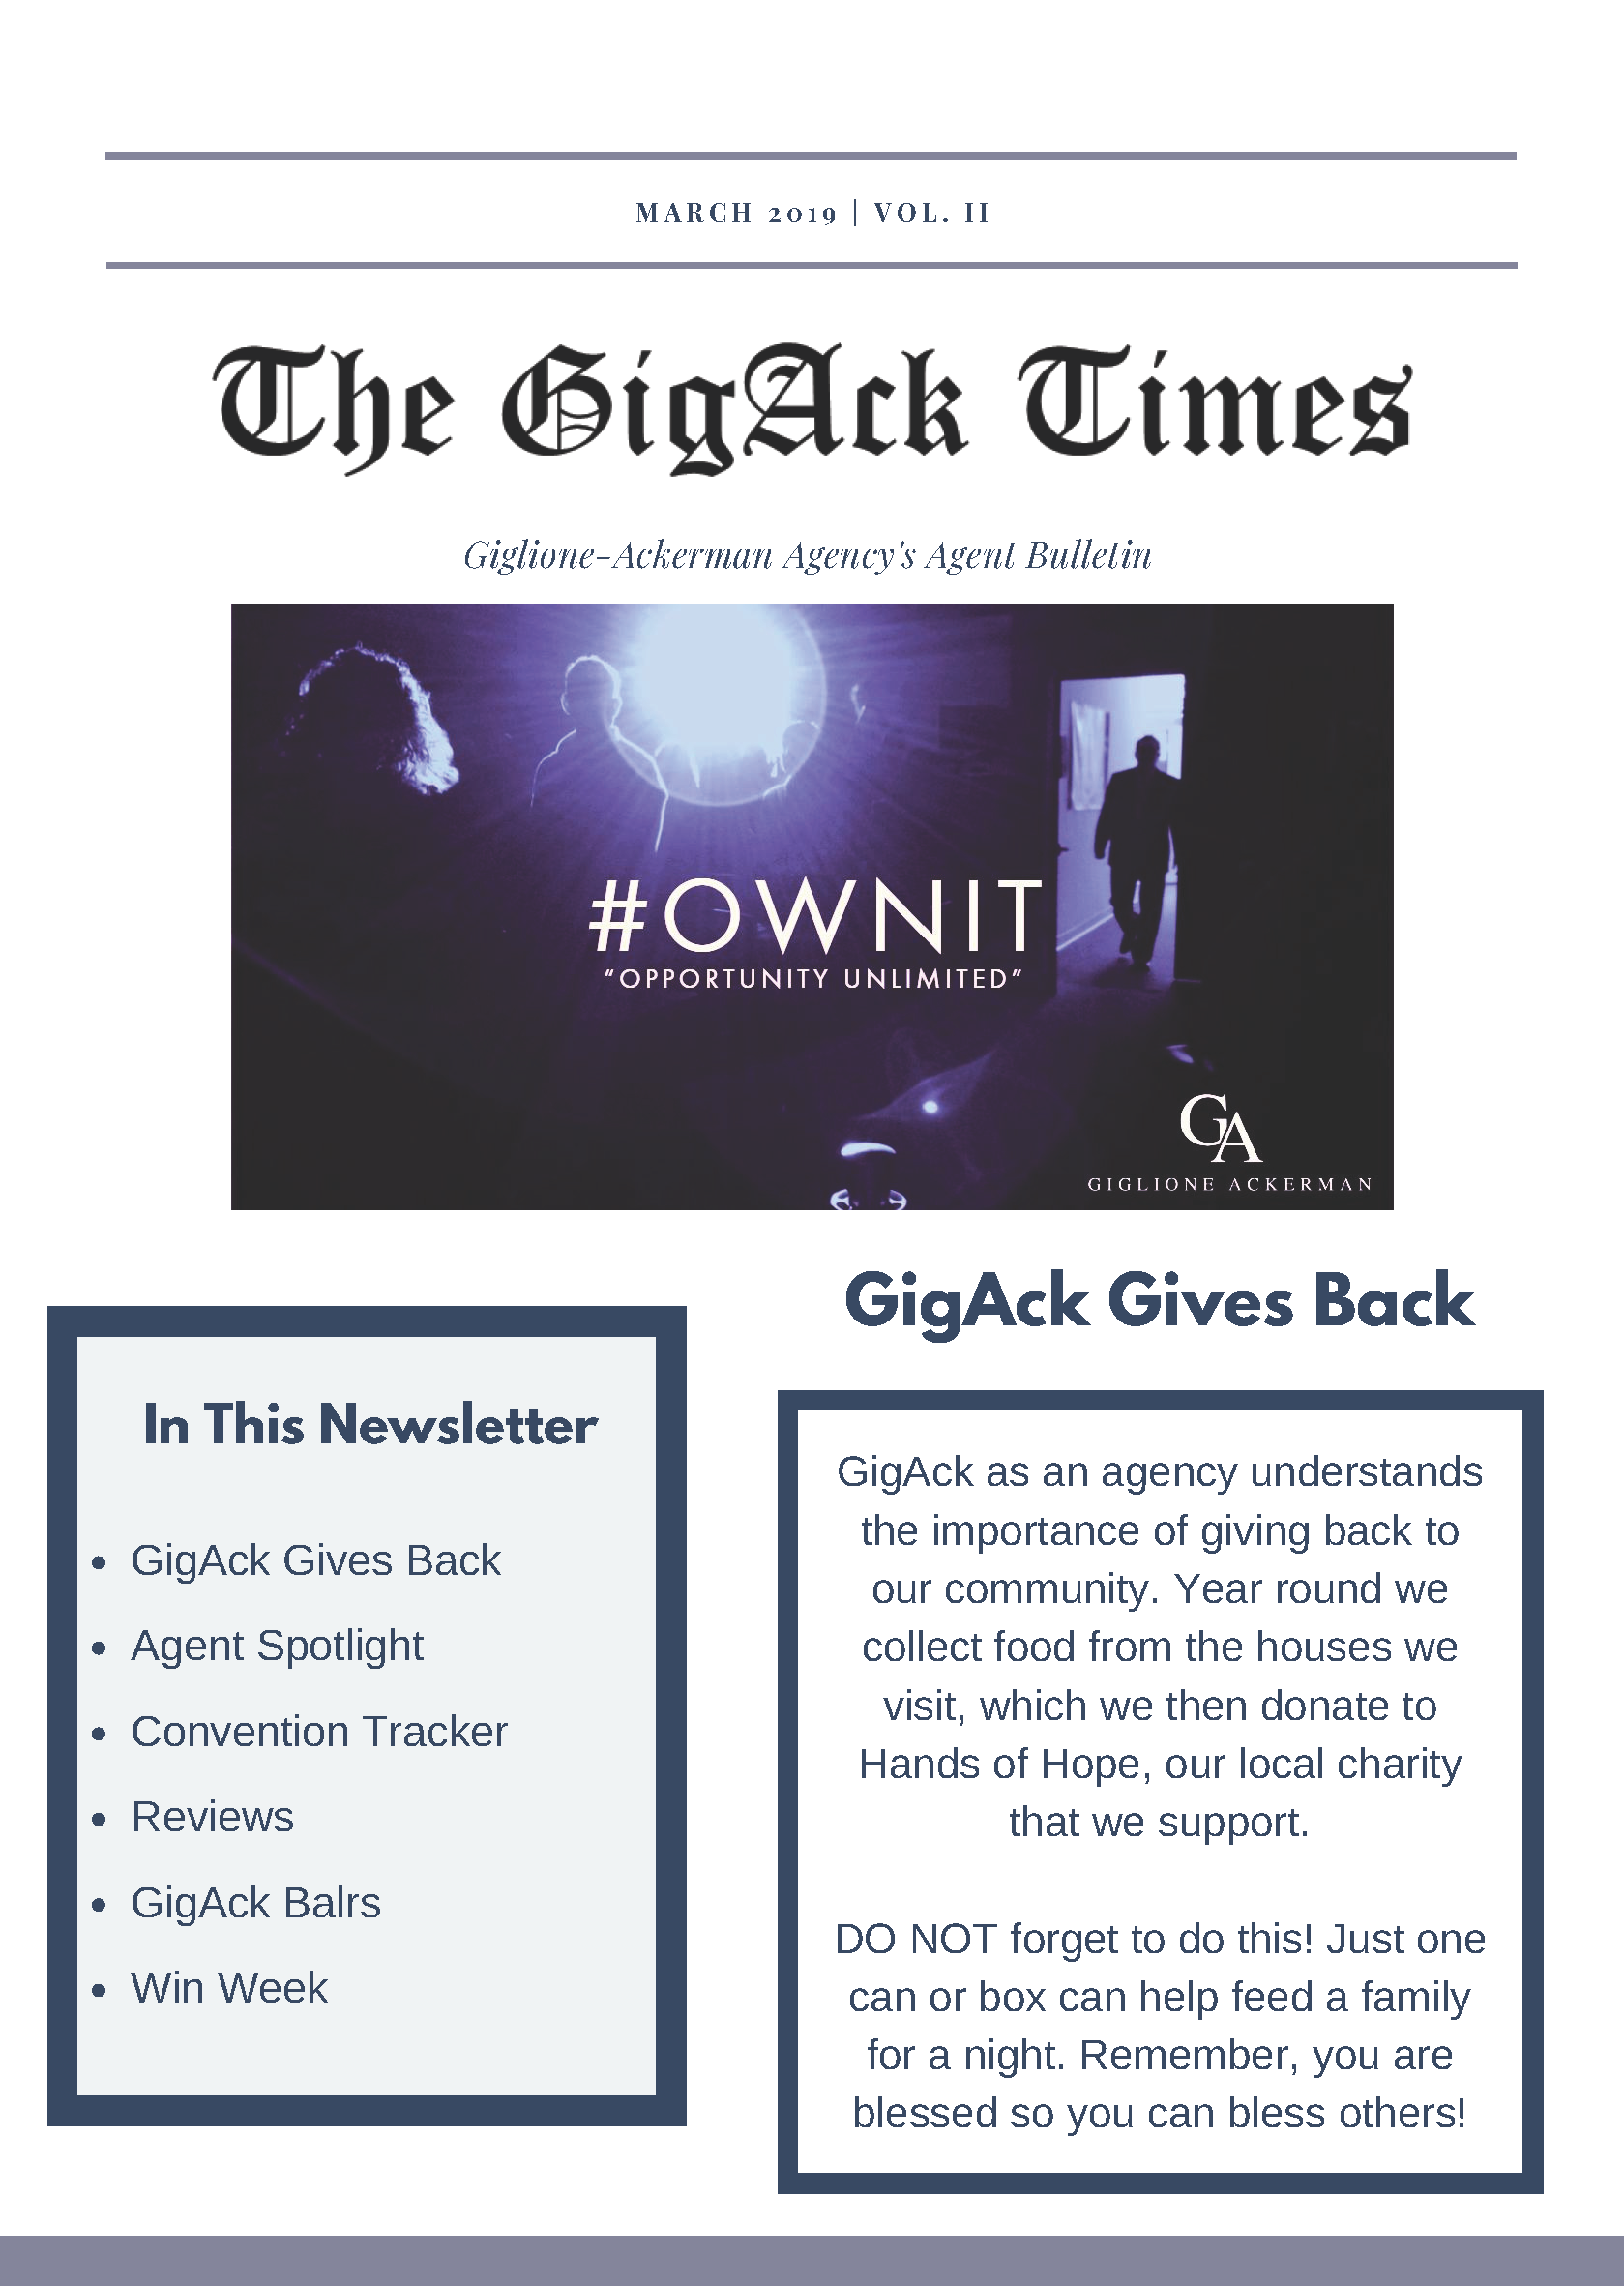 GigAck Times - March 2019_Page_1.png